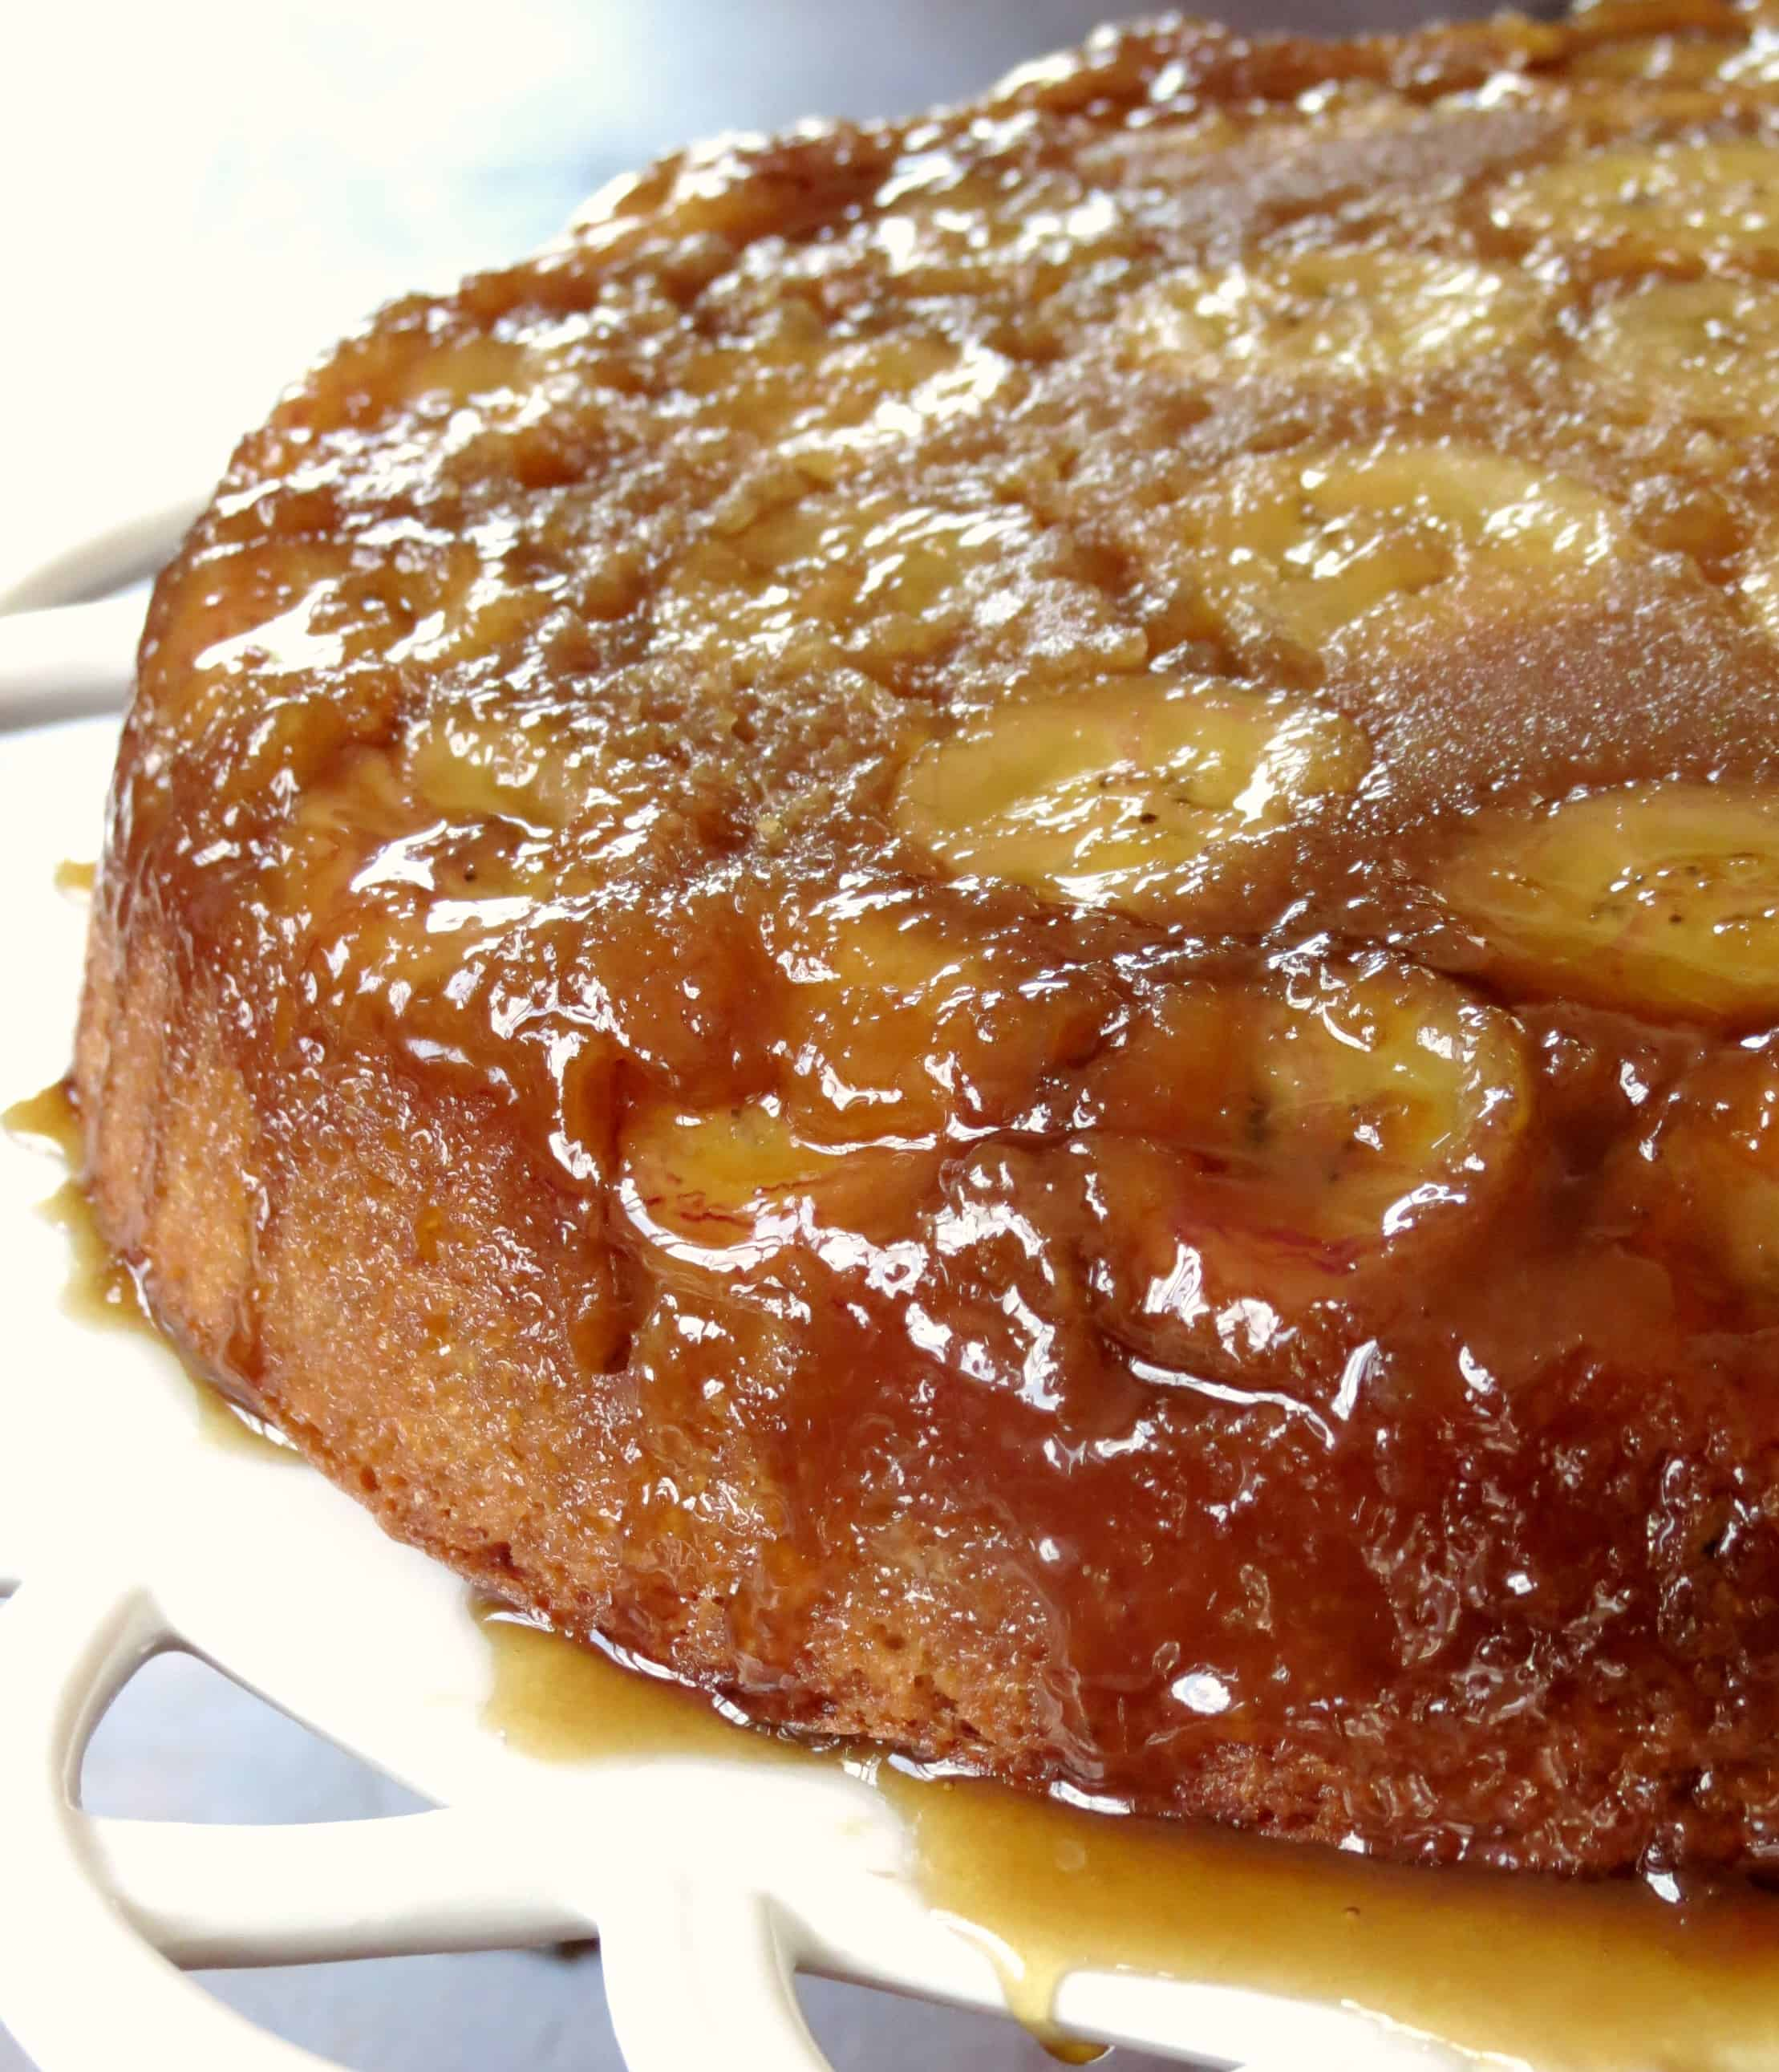 upside down cake upside down cranberry cake pineapple upside down cake ...